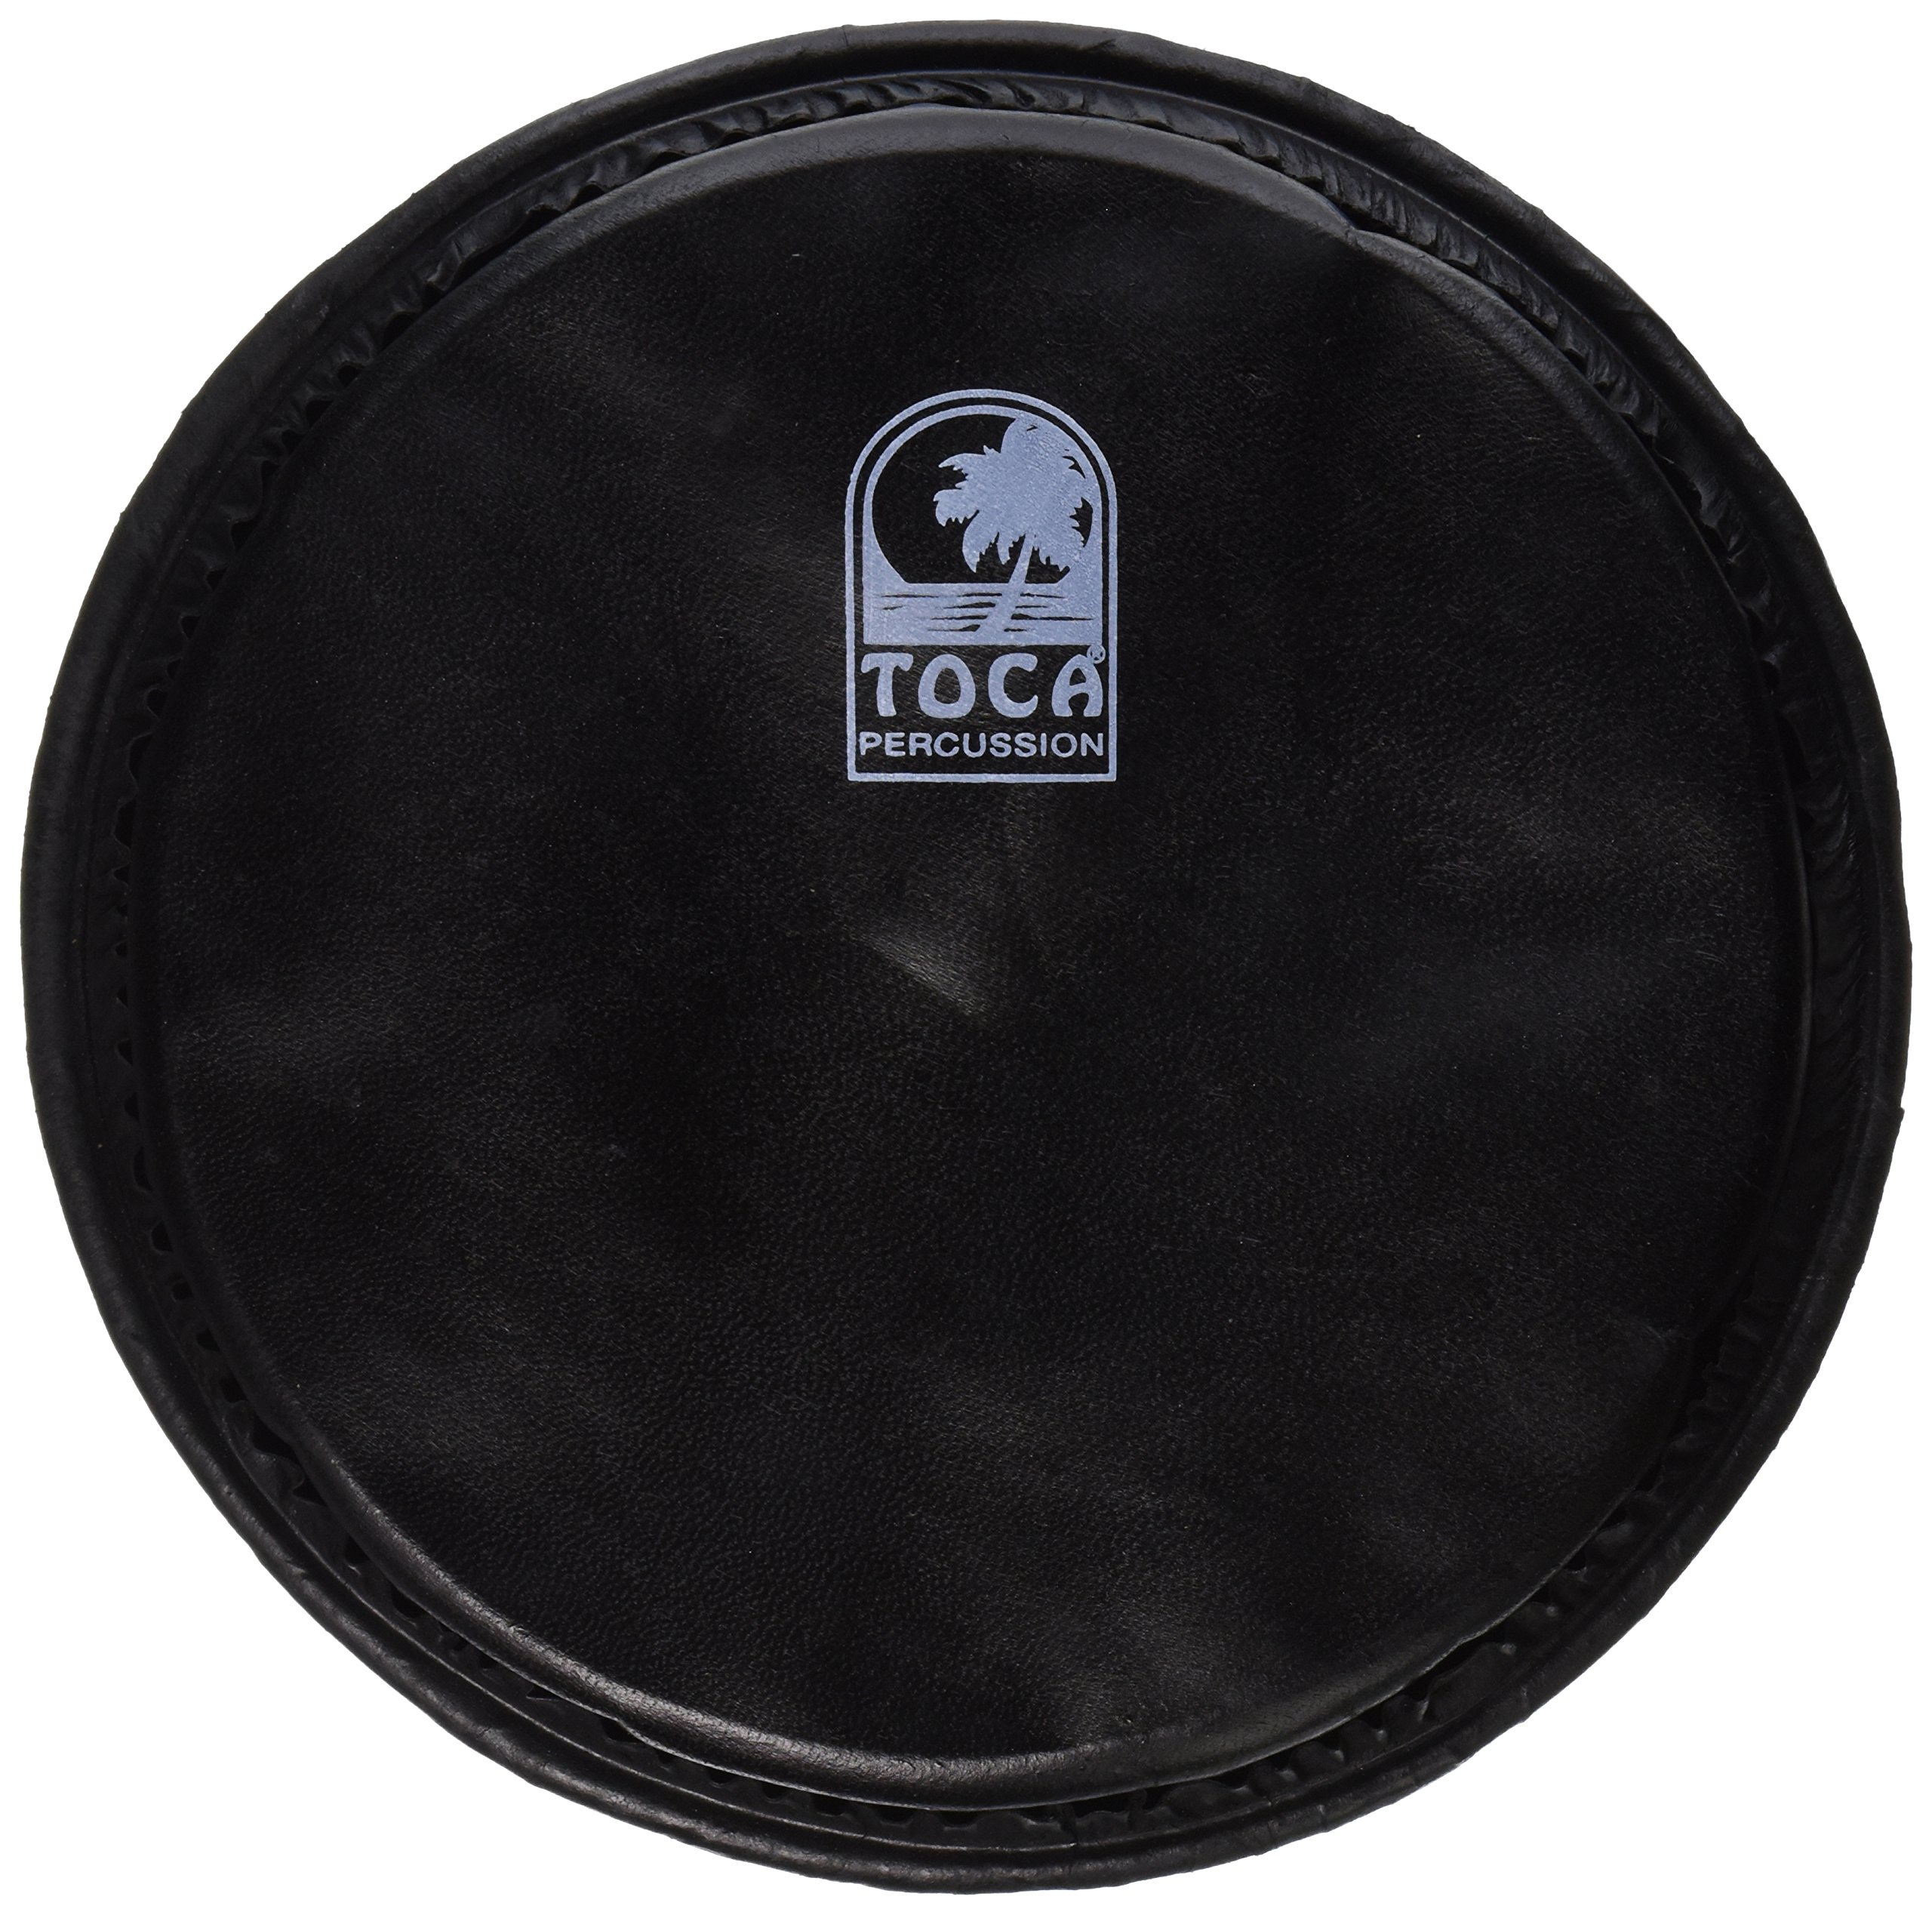 Toca TP-FHMB9 9-Inch Goat Skin Black Goat Skin Head for Mechanically Tuned Djembe